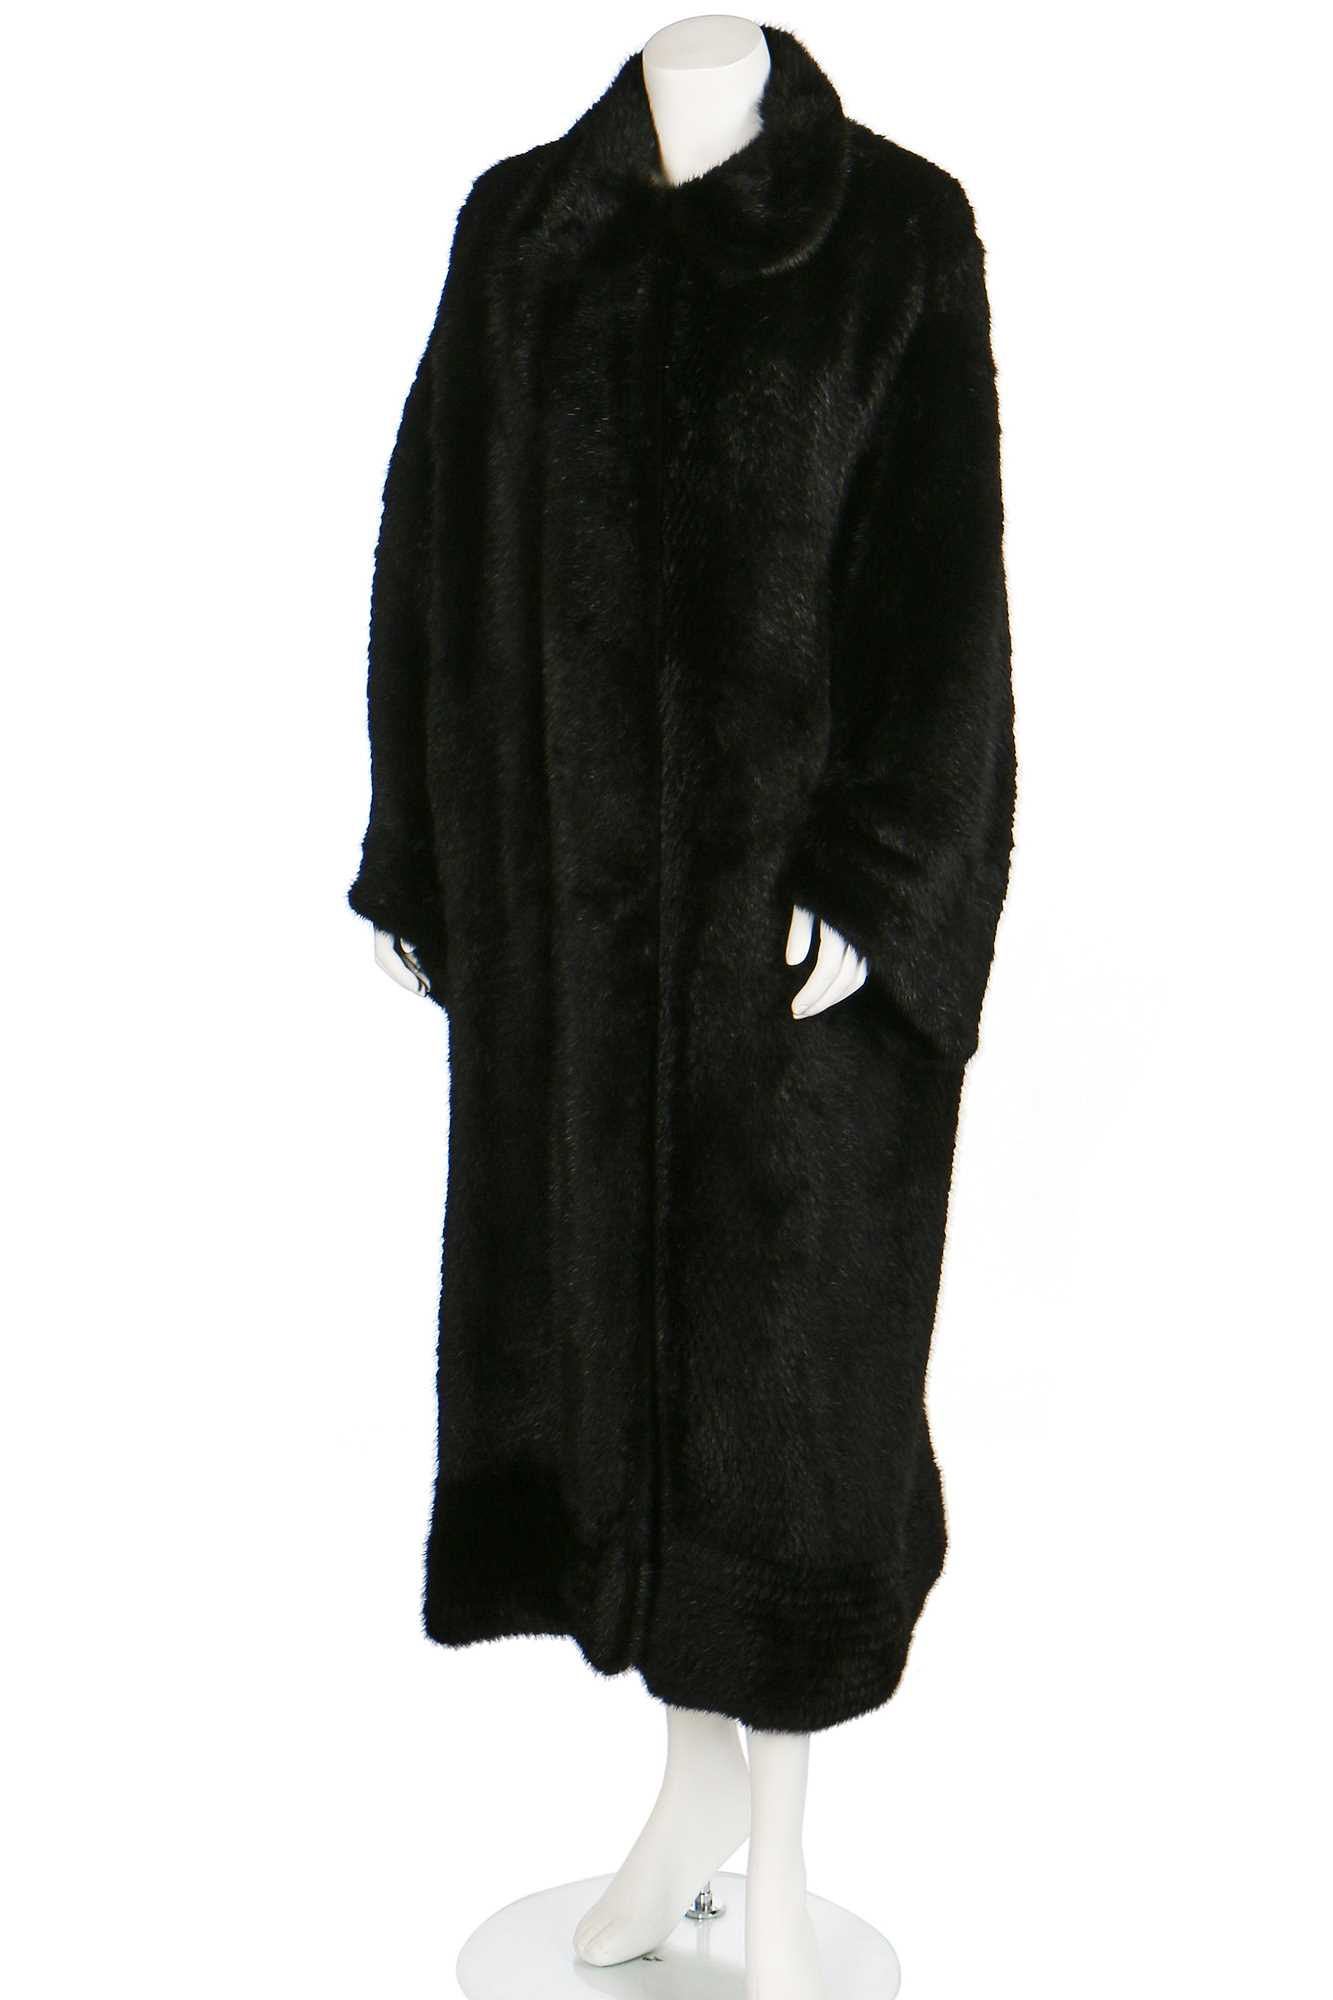 Lot 22-A Christian Dior knitted black mink coat, 1990s